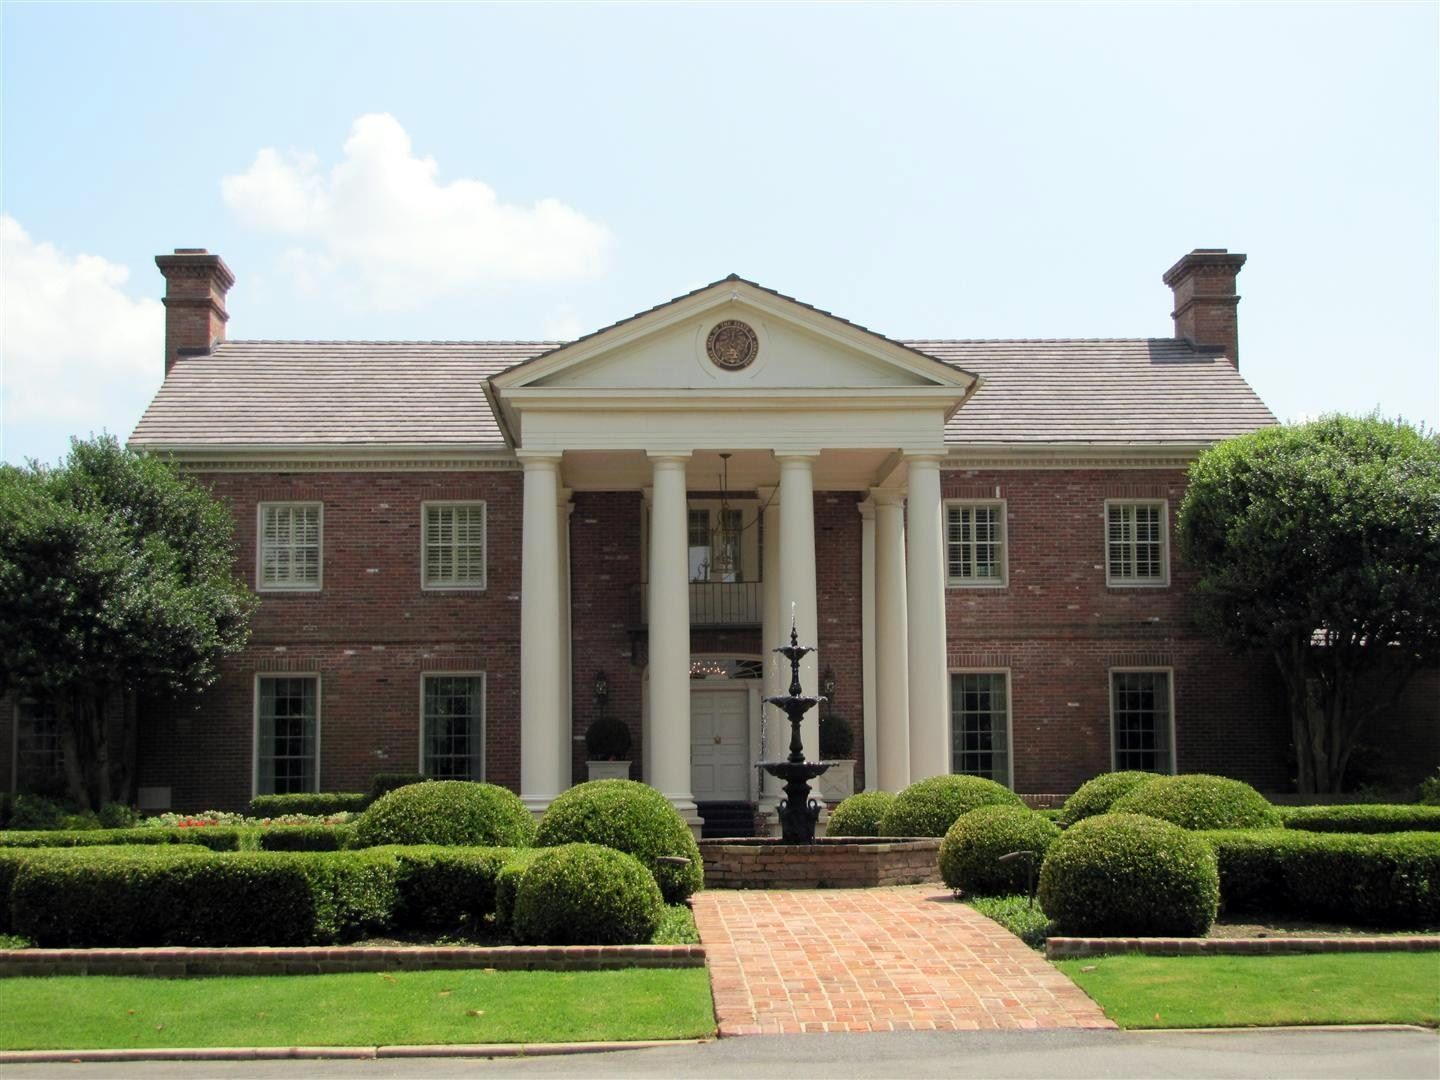 The Arkansas Governor S Mansion Is The Official Residence Of The Governor Of Arkansas And His Family The Mansion Is Located Mansions House Styles County House